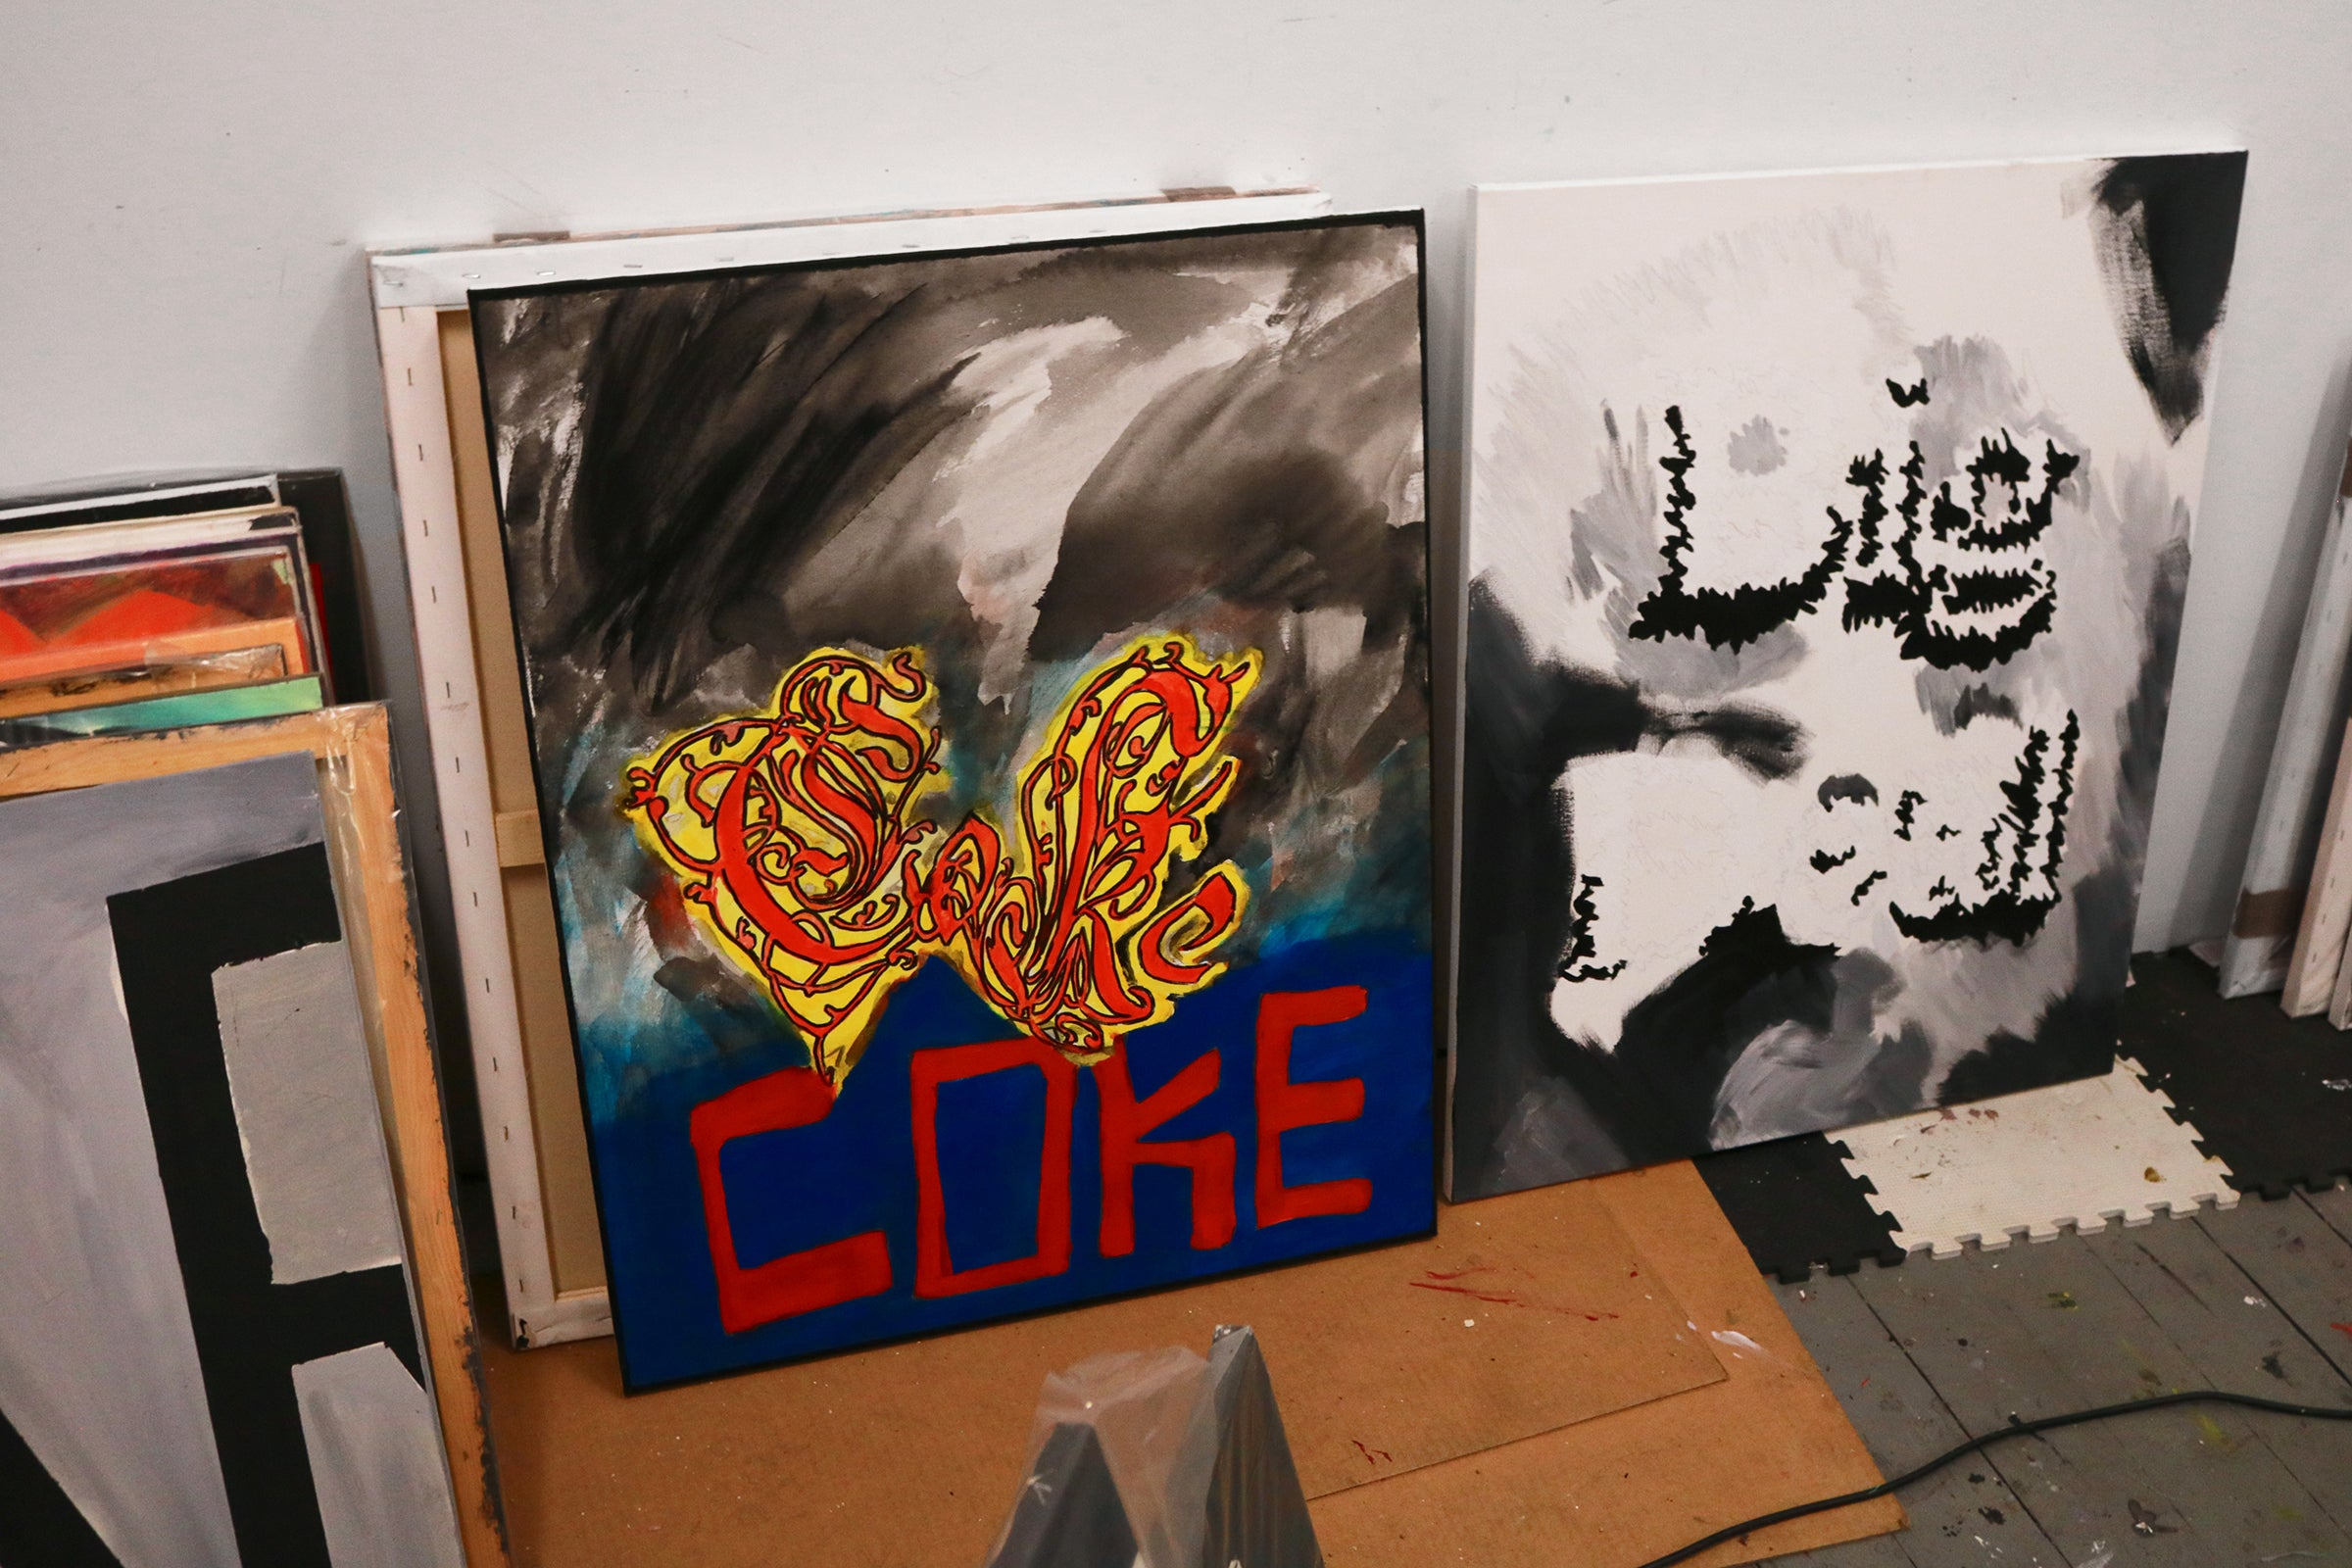 Coke painting, photo by Rouchka Bourquelot